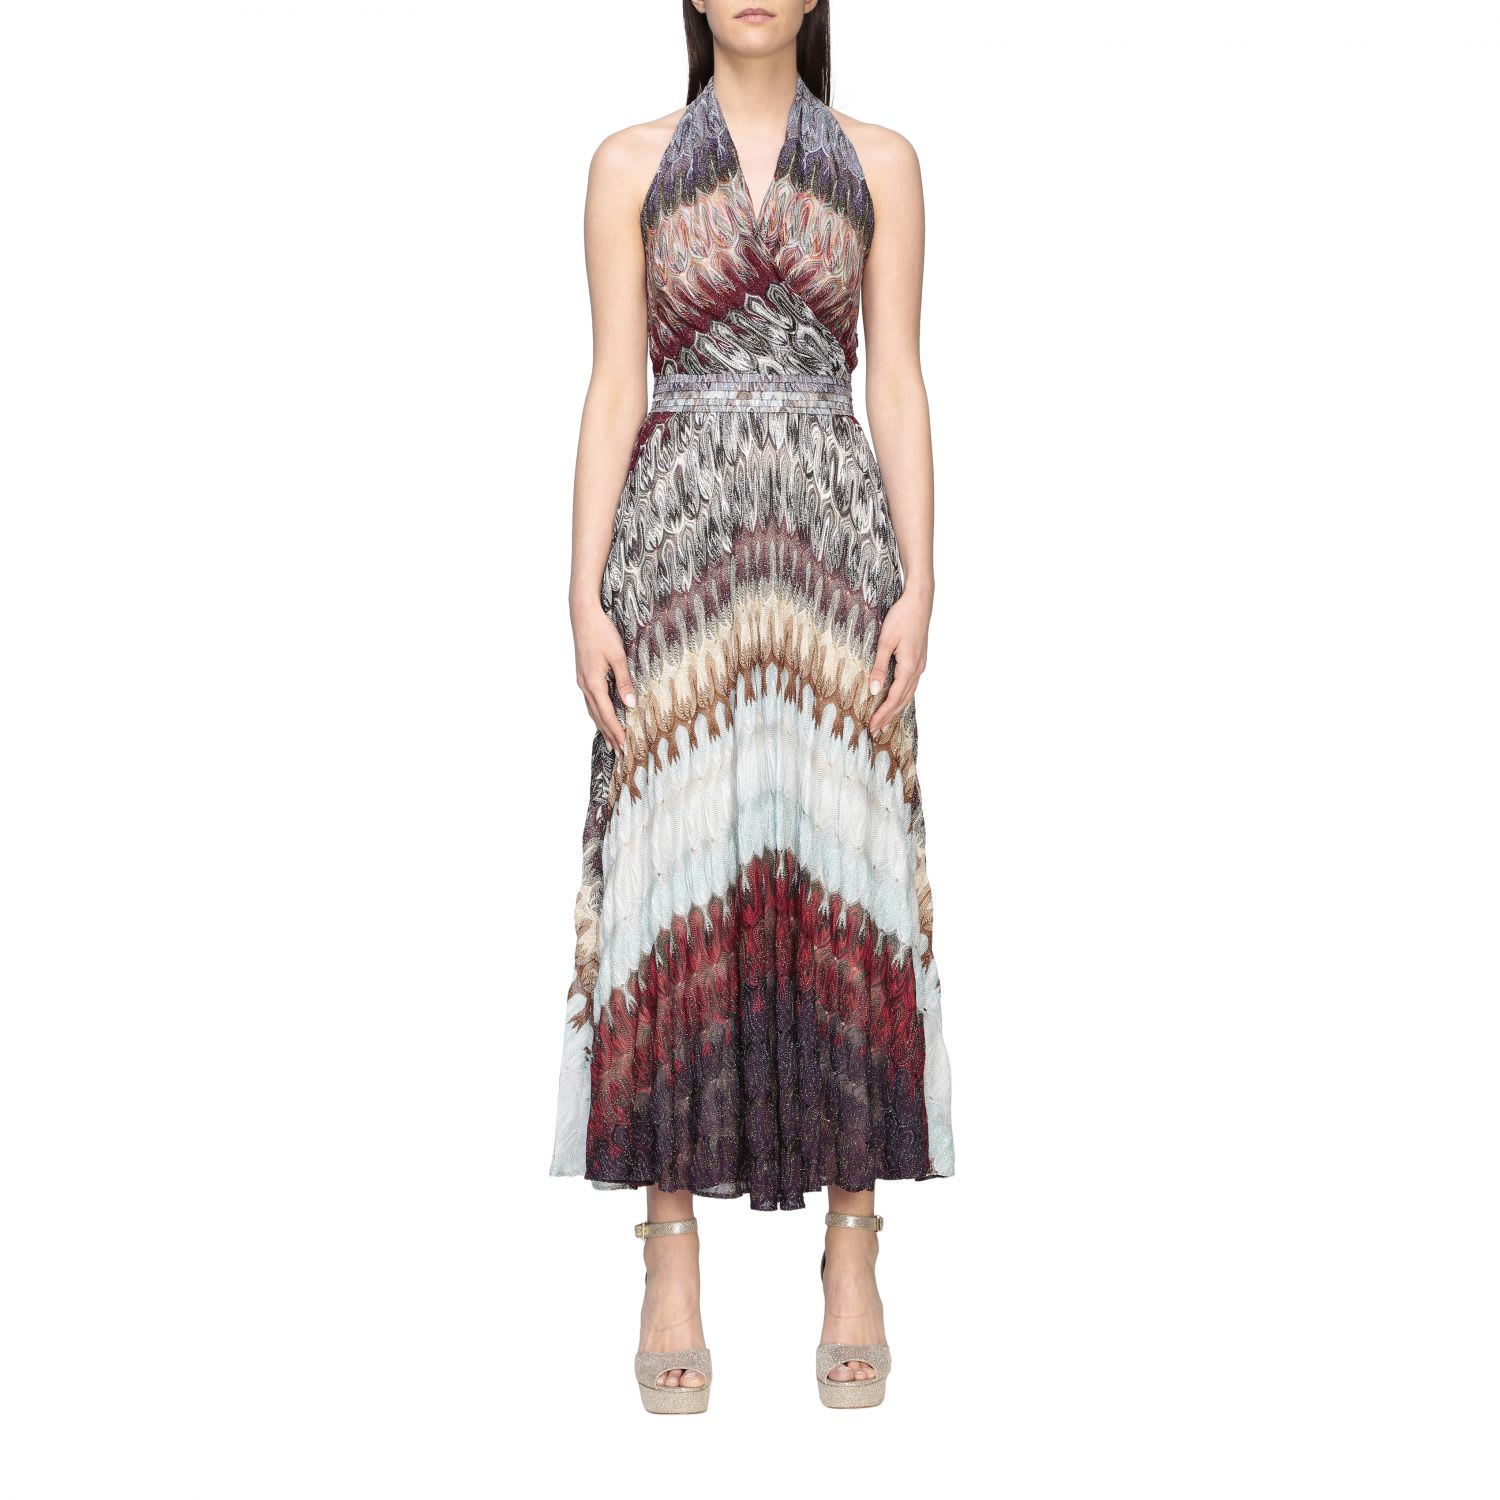 Buy Missoni Dress Missoni Maxi Dress With American Neckline In Lurex Jacquard online, shop Missoni with free shipping